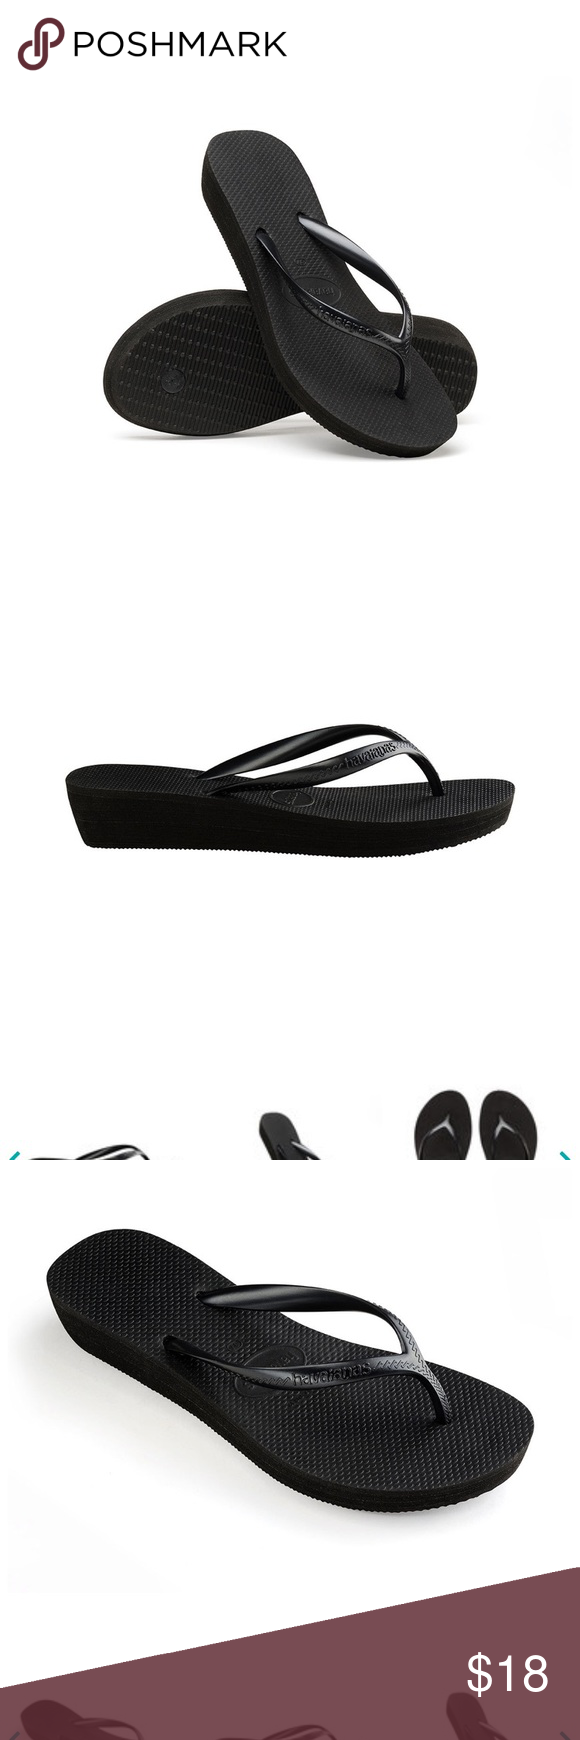 look out for really comfortable best quality Havaianas wedge flip flops Black Havaianas wedge flip flops Size ...